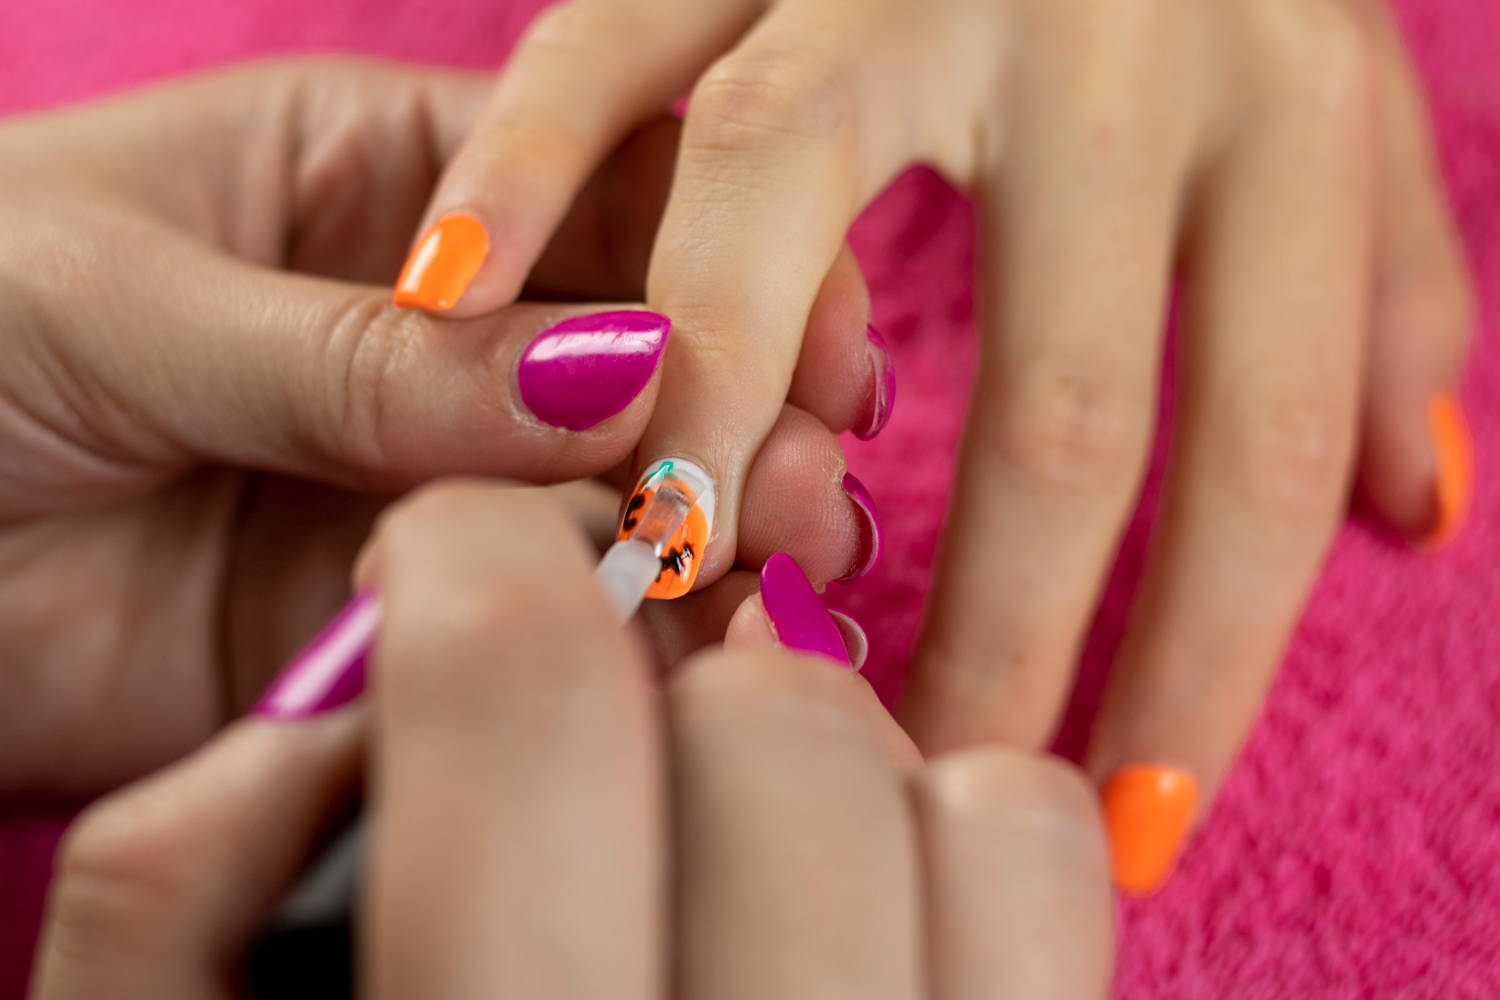 ORLY Glosser Topcoat being painted onto finished pumpkin nails